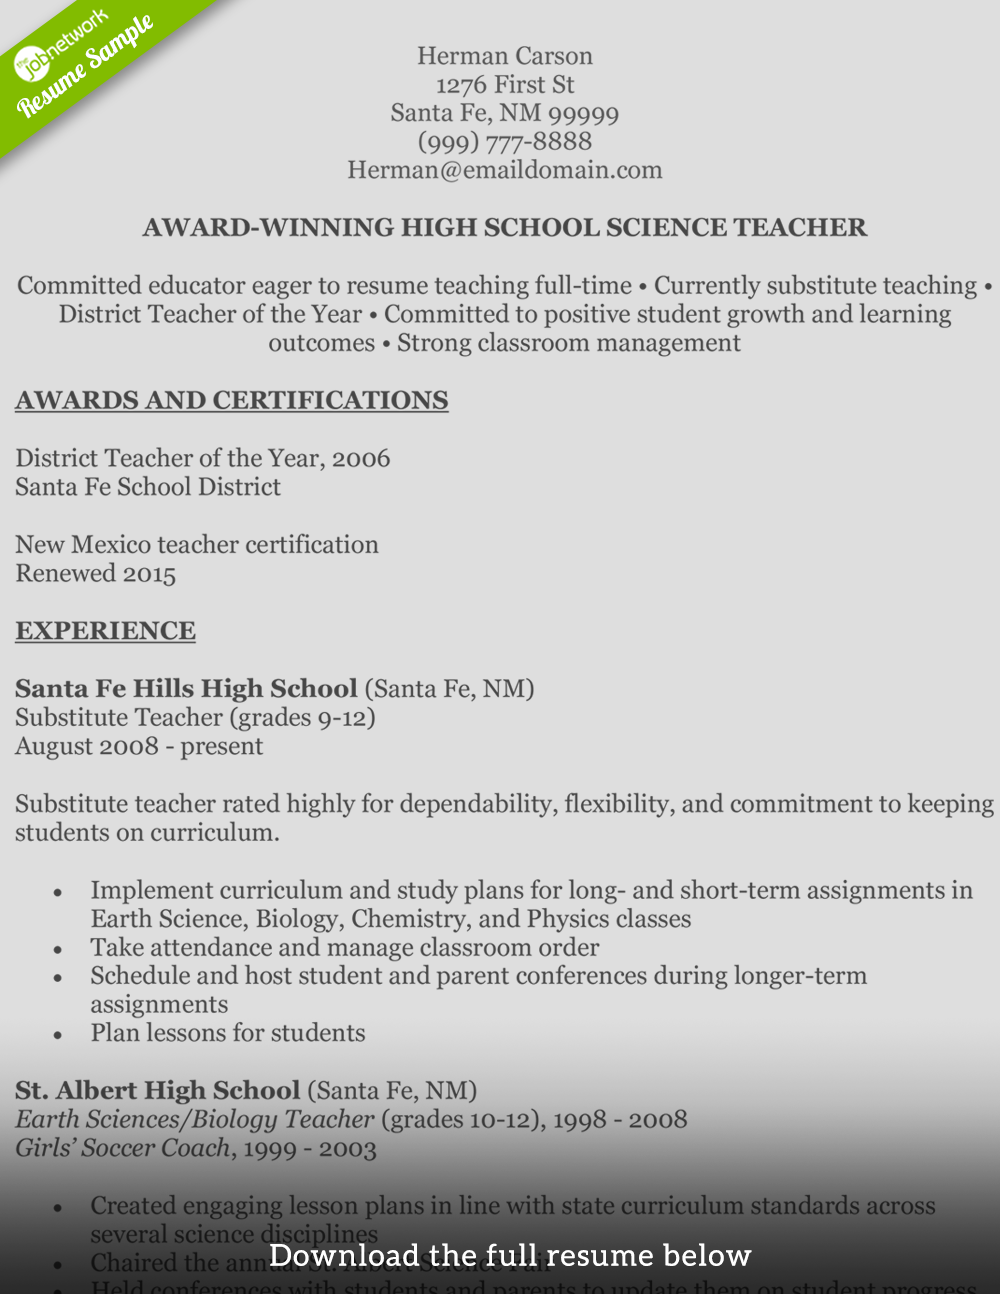 Teaching Resume Herman Carson  Resume Substitute Teacher